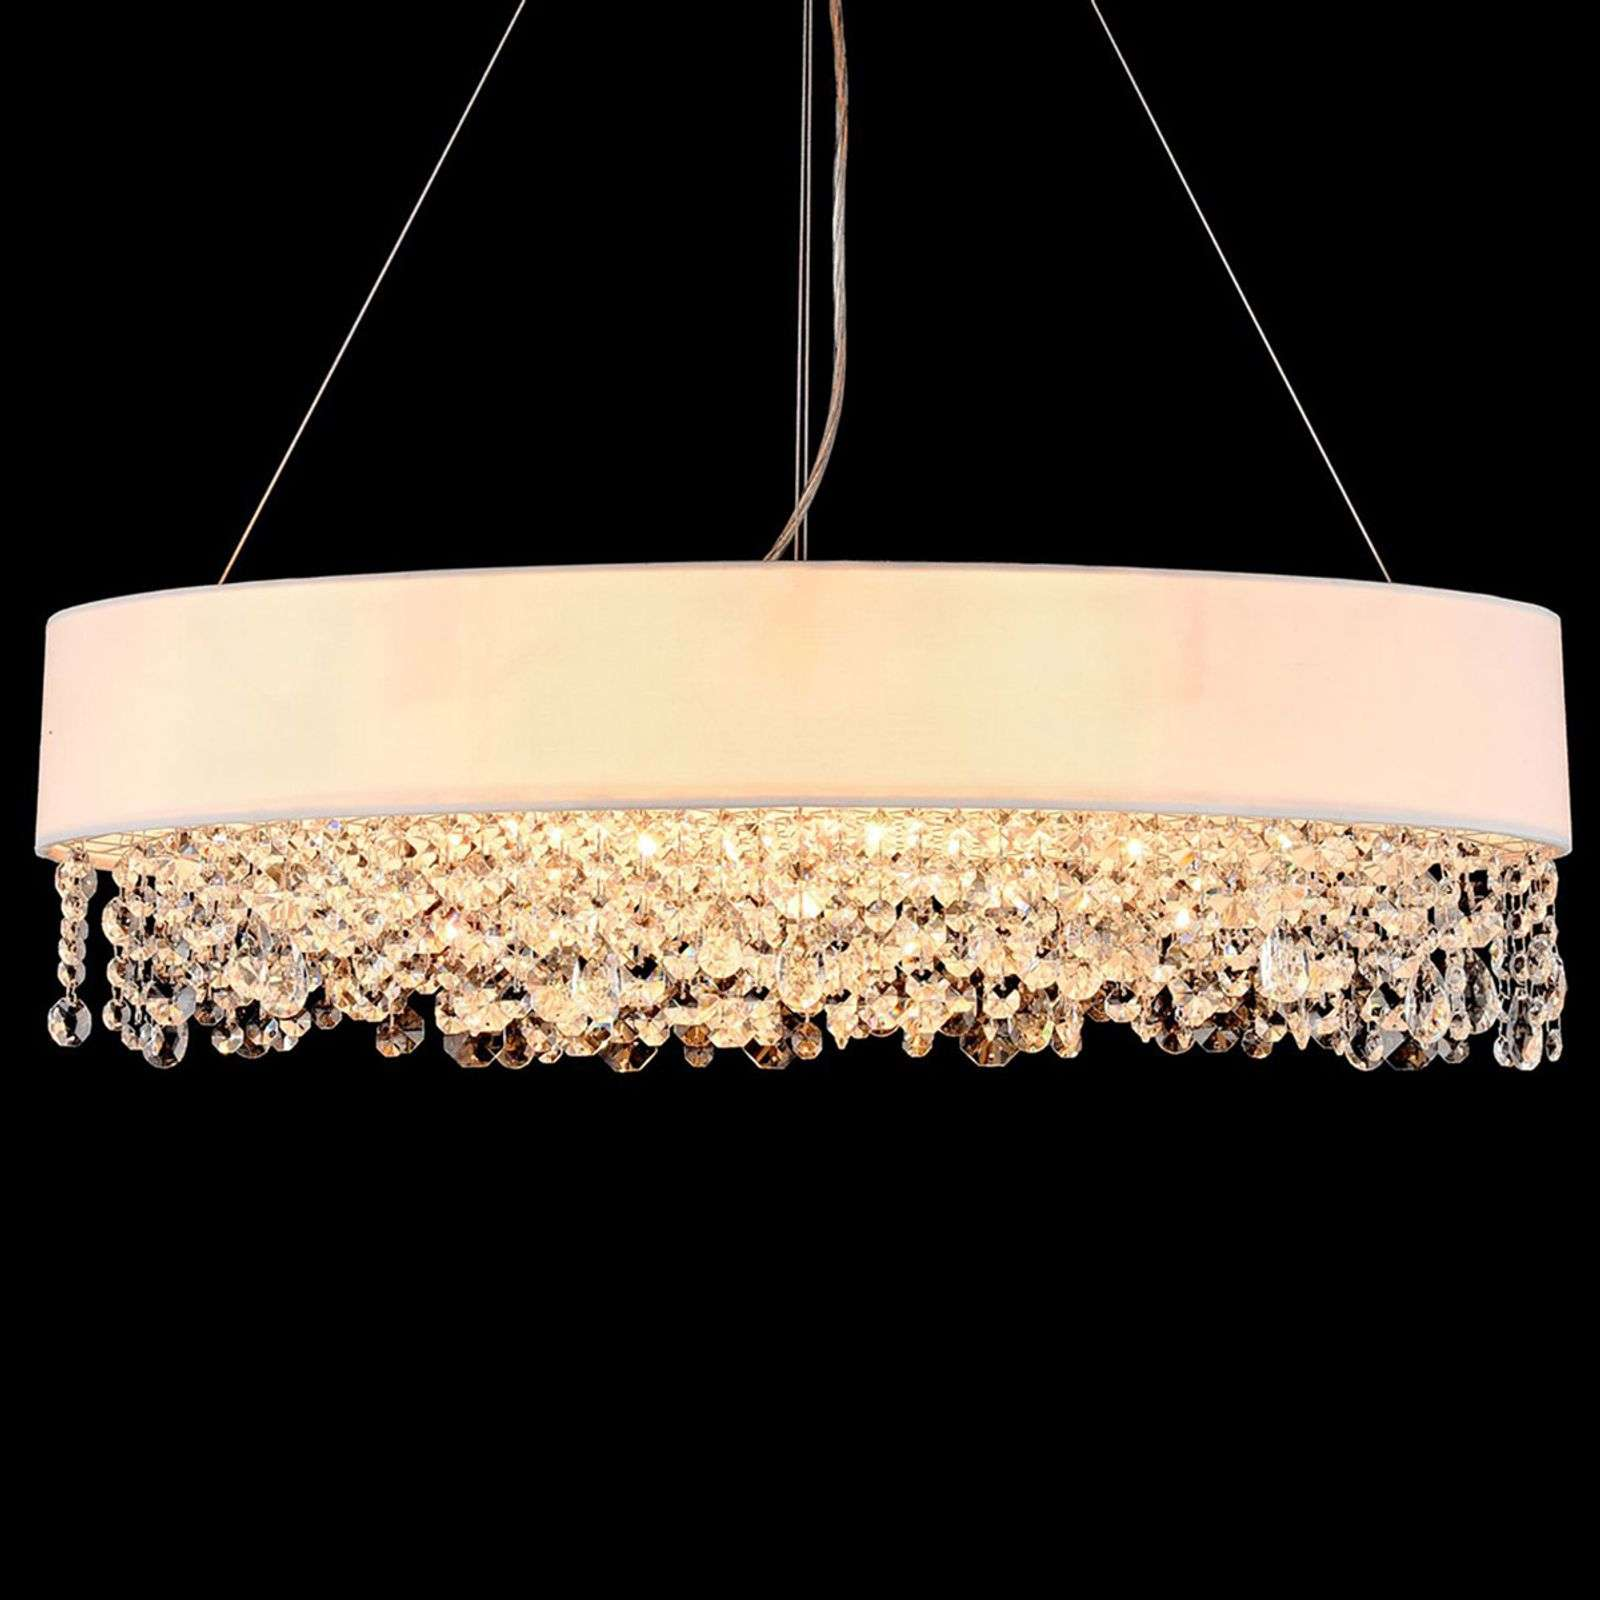 Ovale Textiel hanglamp Manfred